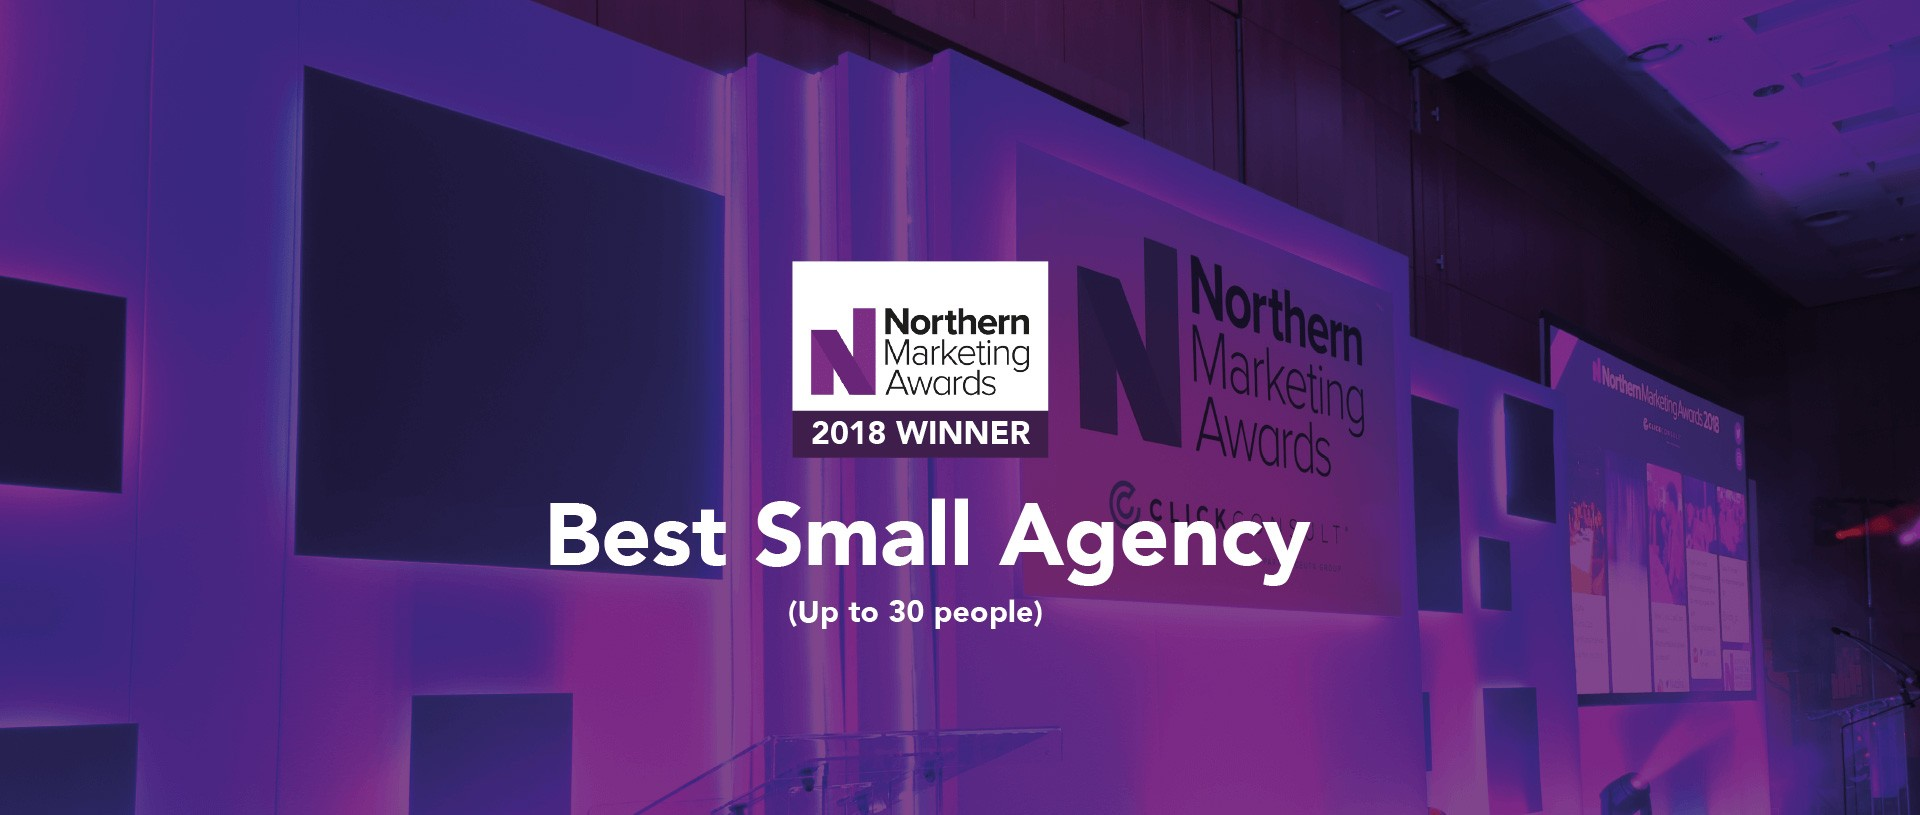 Best small agency